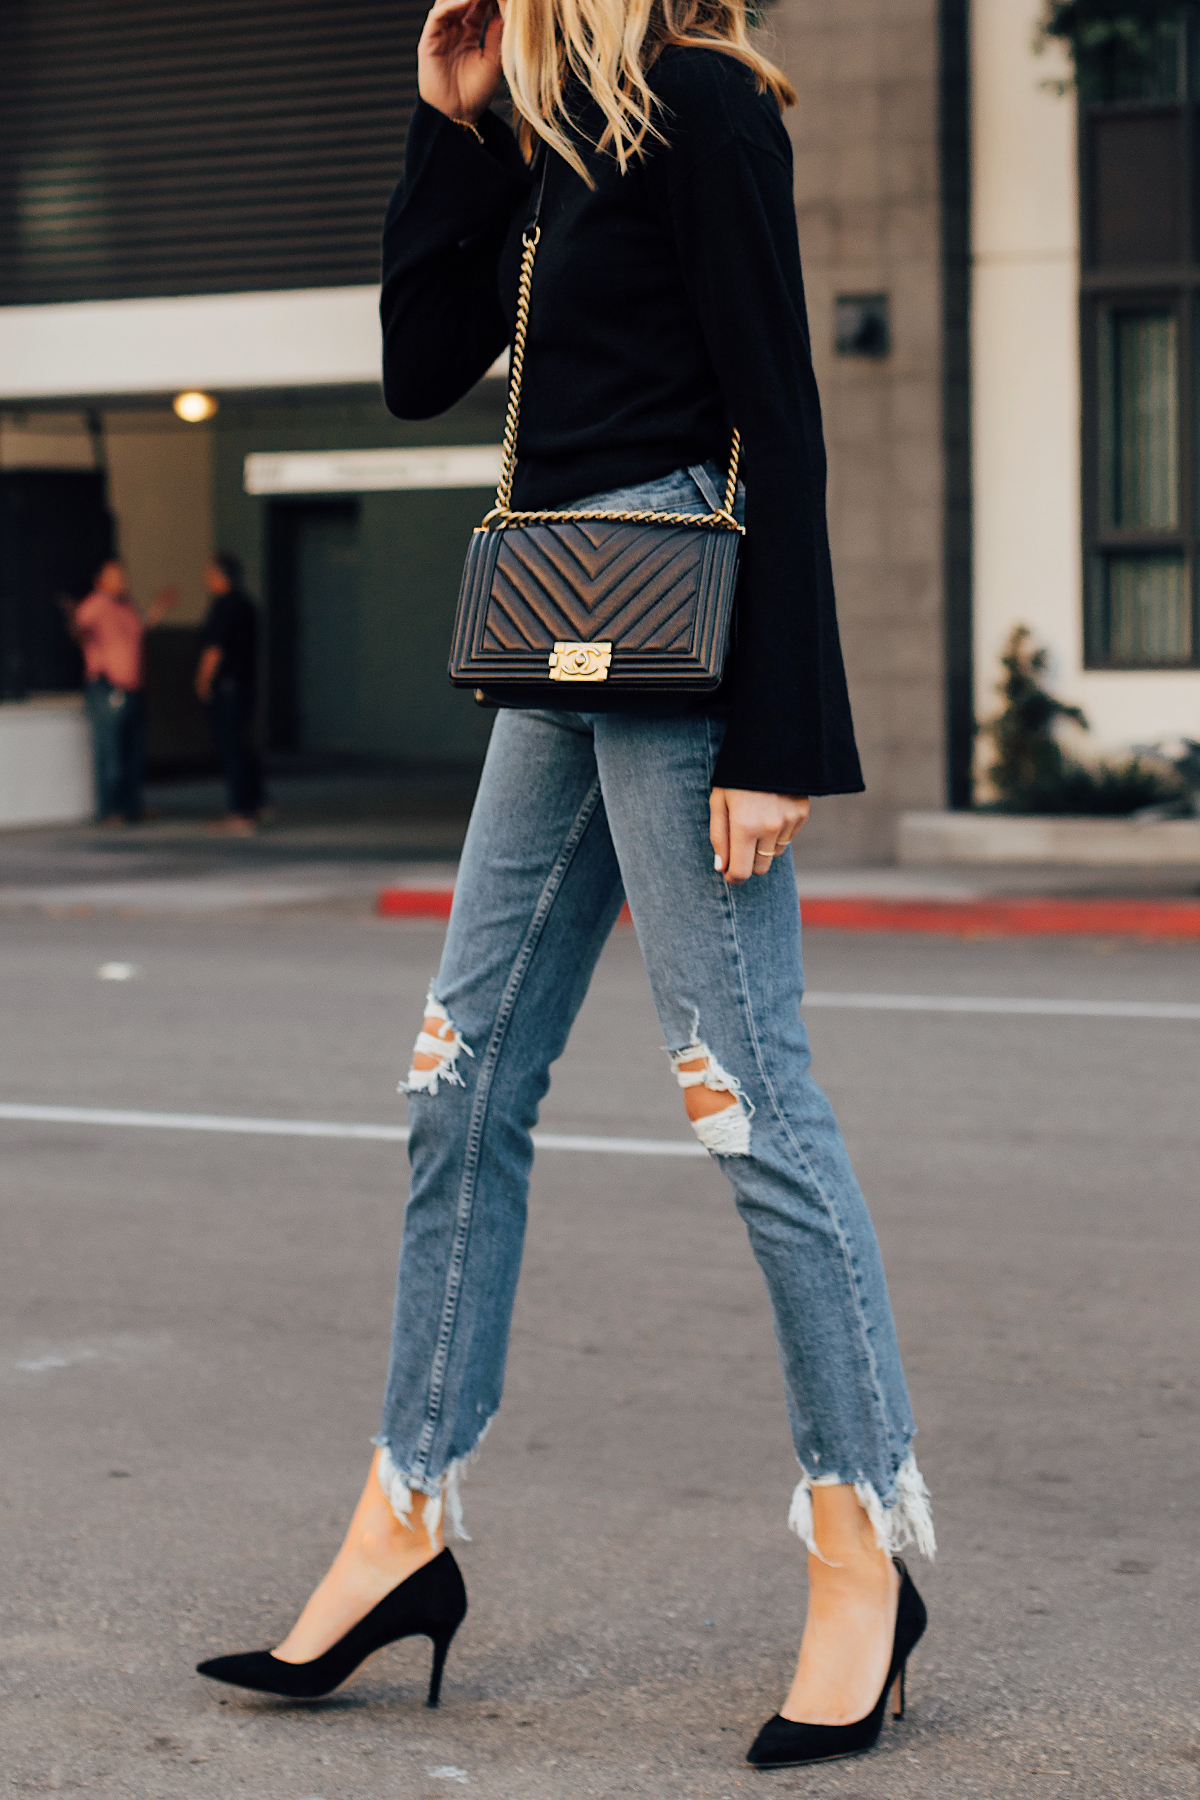 Blonde Woman Wearing Theory Black Sweater Black Ripped Skinny Jeans Black Pumps Chanel Black Boy Bag Fashion Jackson San Diego Fashion Blogger Street Style